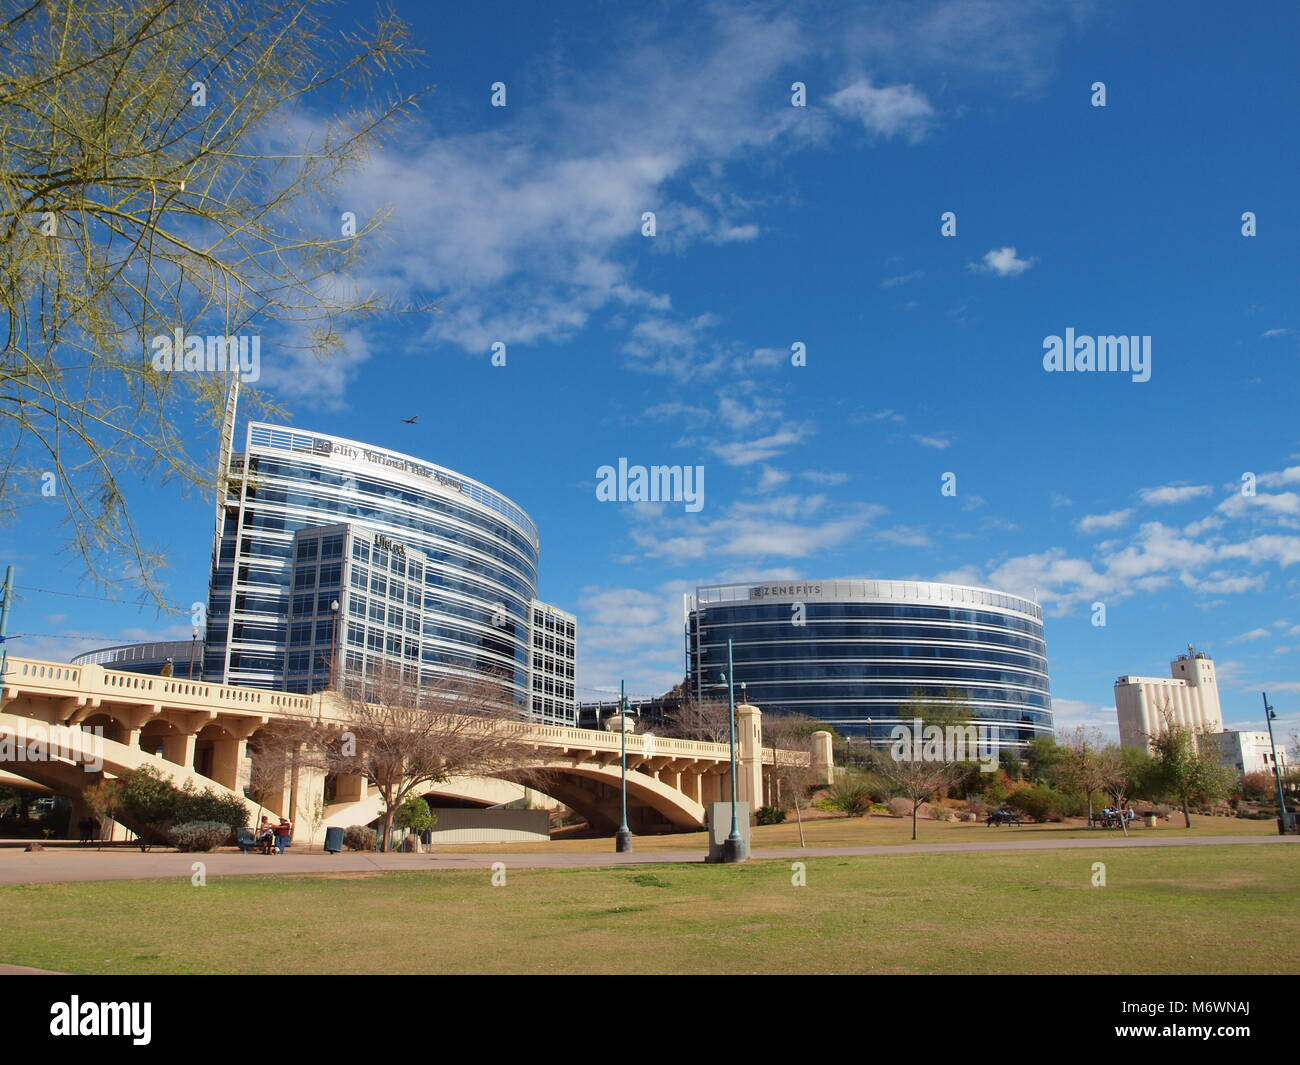 Tempe  Arizona city park known as Tempe Town Lake situated on the Salt River. - Stock Image